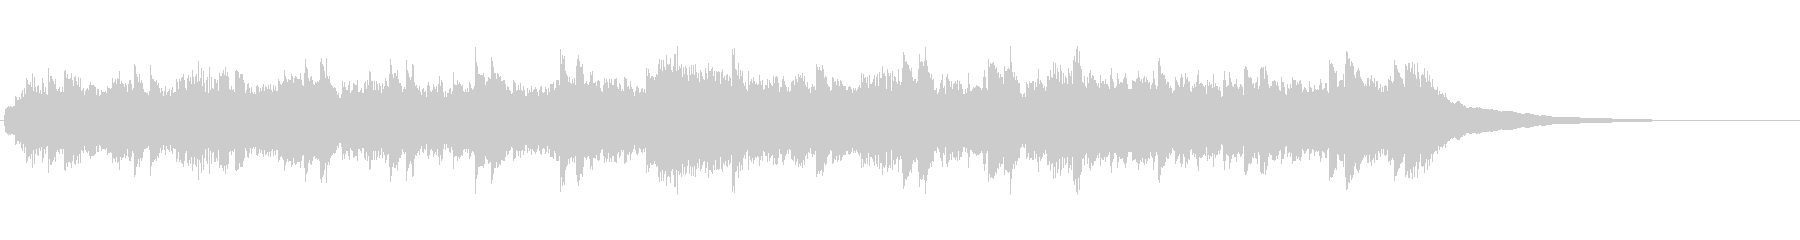 Bright, refreshing and beautiful guitar jingle's unreproduced waveform